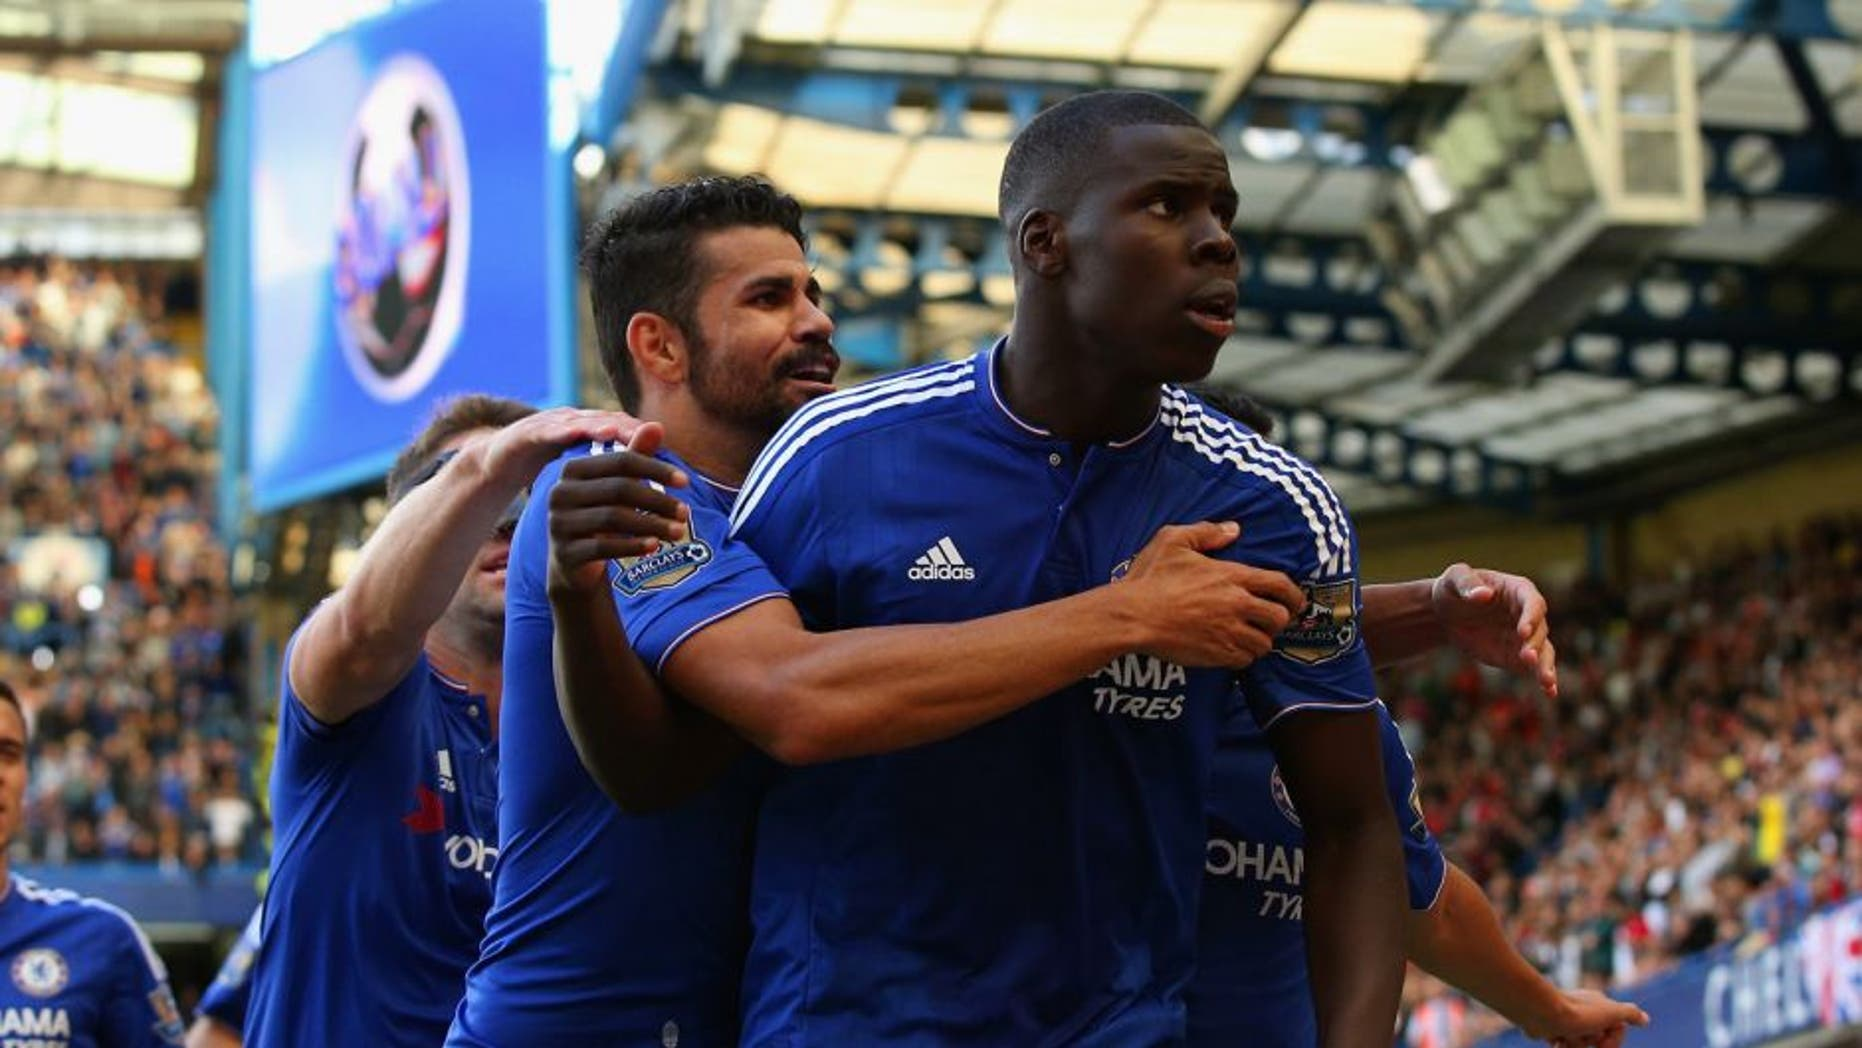 LONDON, ENGLAND - SEPTEMBER 19: Kurt Zouma (1st R) of Chelsea celebrates scoring his team's first goal with his team mates during the Barclays Premier League match between Chelsea and Arsenal at Stamford Bridge on September 19, 2015 in London, United Kingdom. (Photo by Ian Walton/Getty Images)